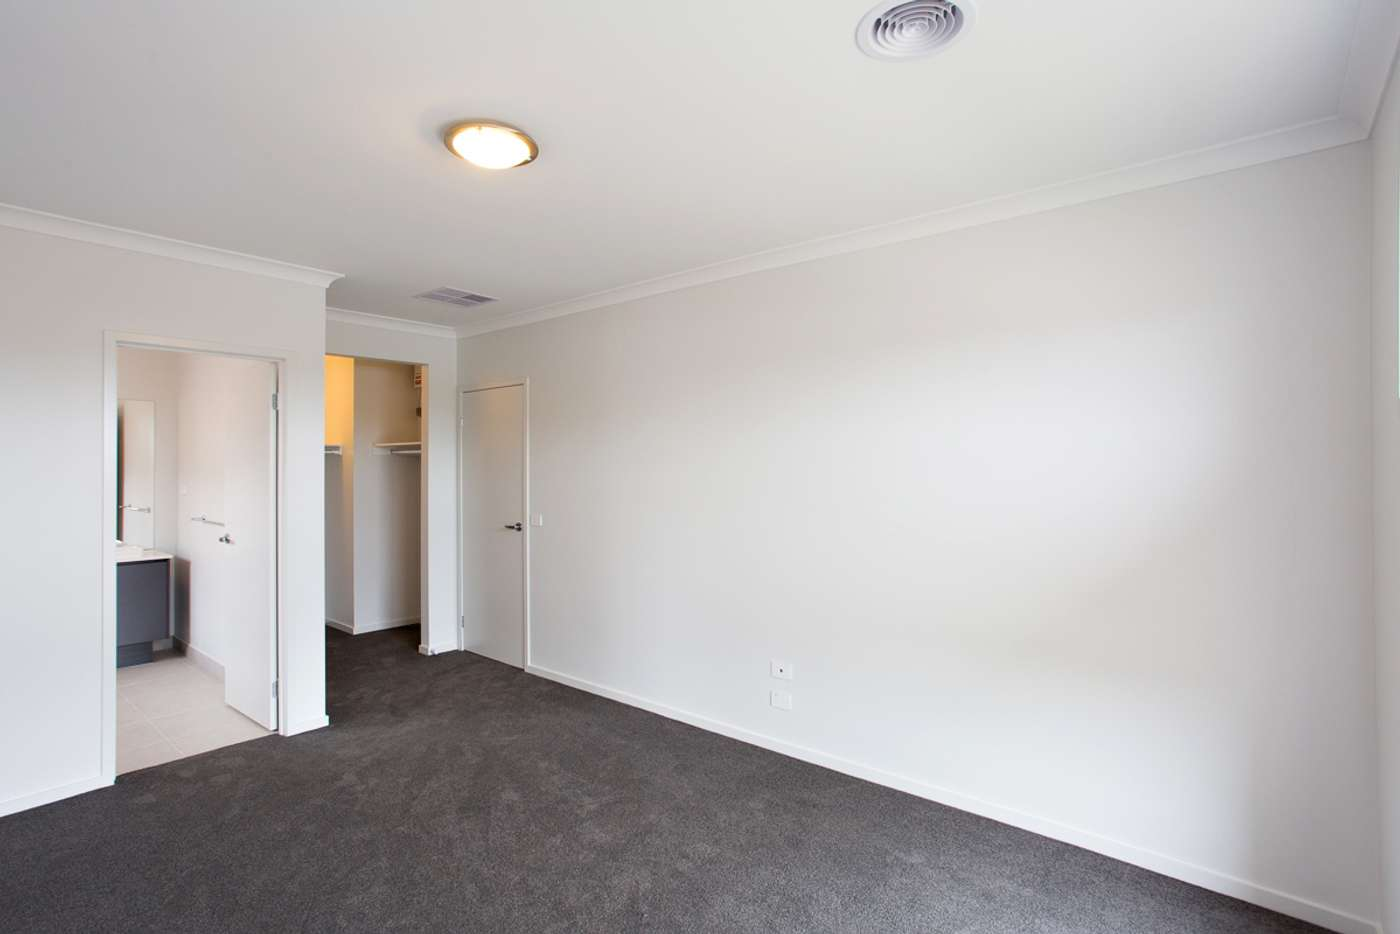 Seventh view of Homely house listing, 10 Kalamata Avenue, Alfredton VIC 3350